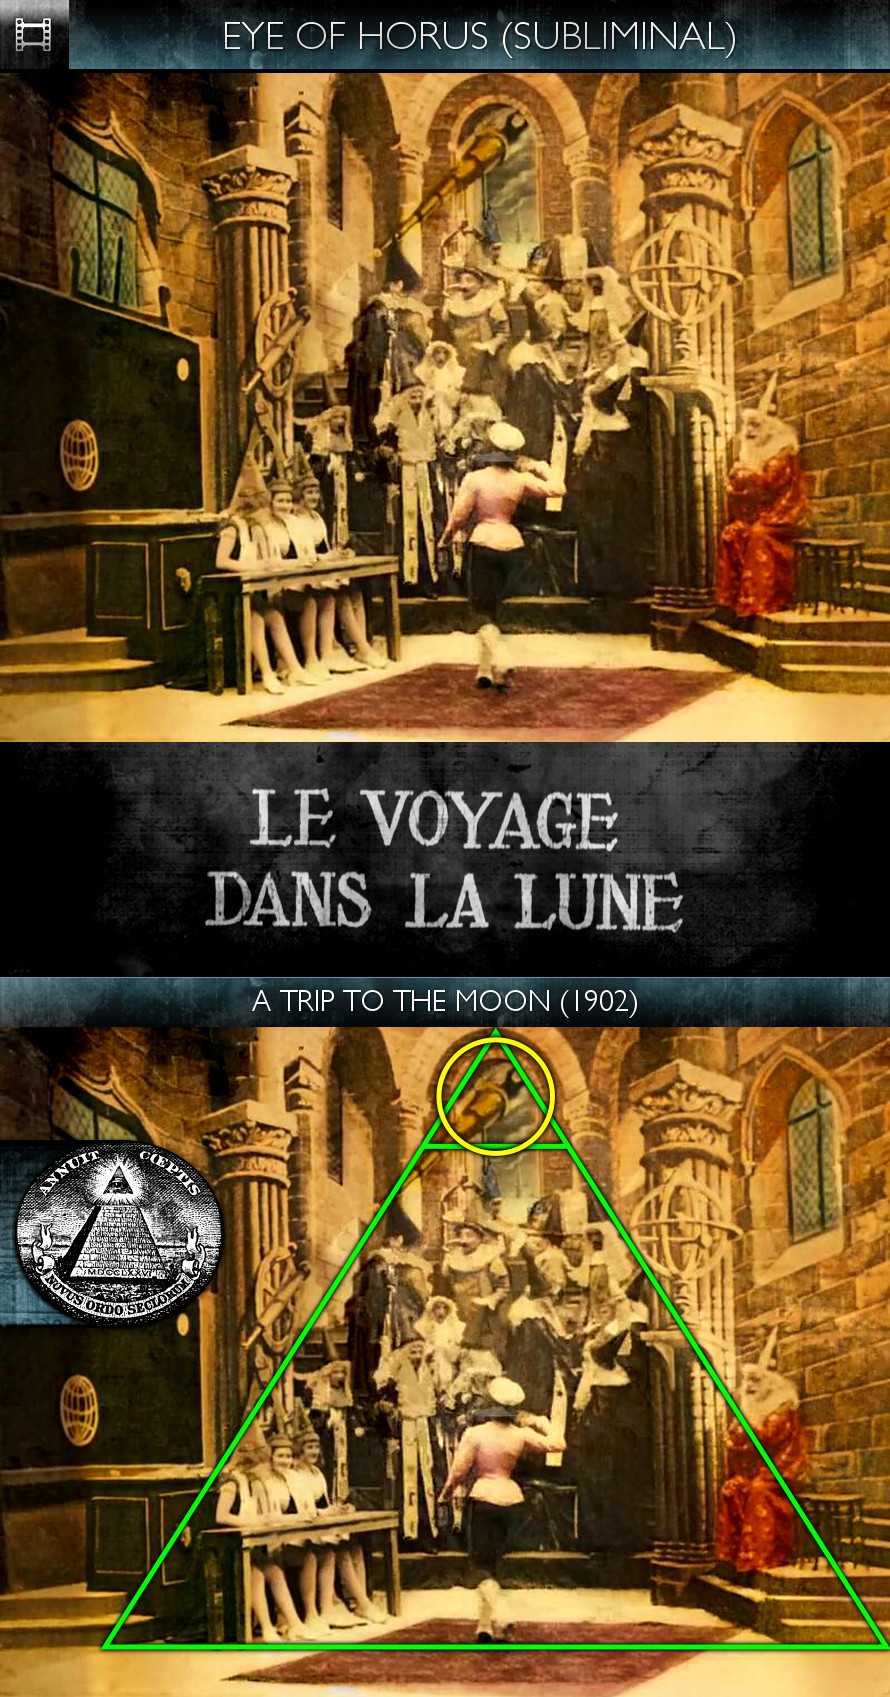 Voyage dans la Lune (A Trip to the Moon) (1902) - Eye of Horus - Subliminal